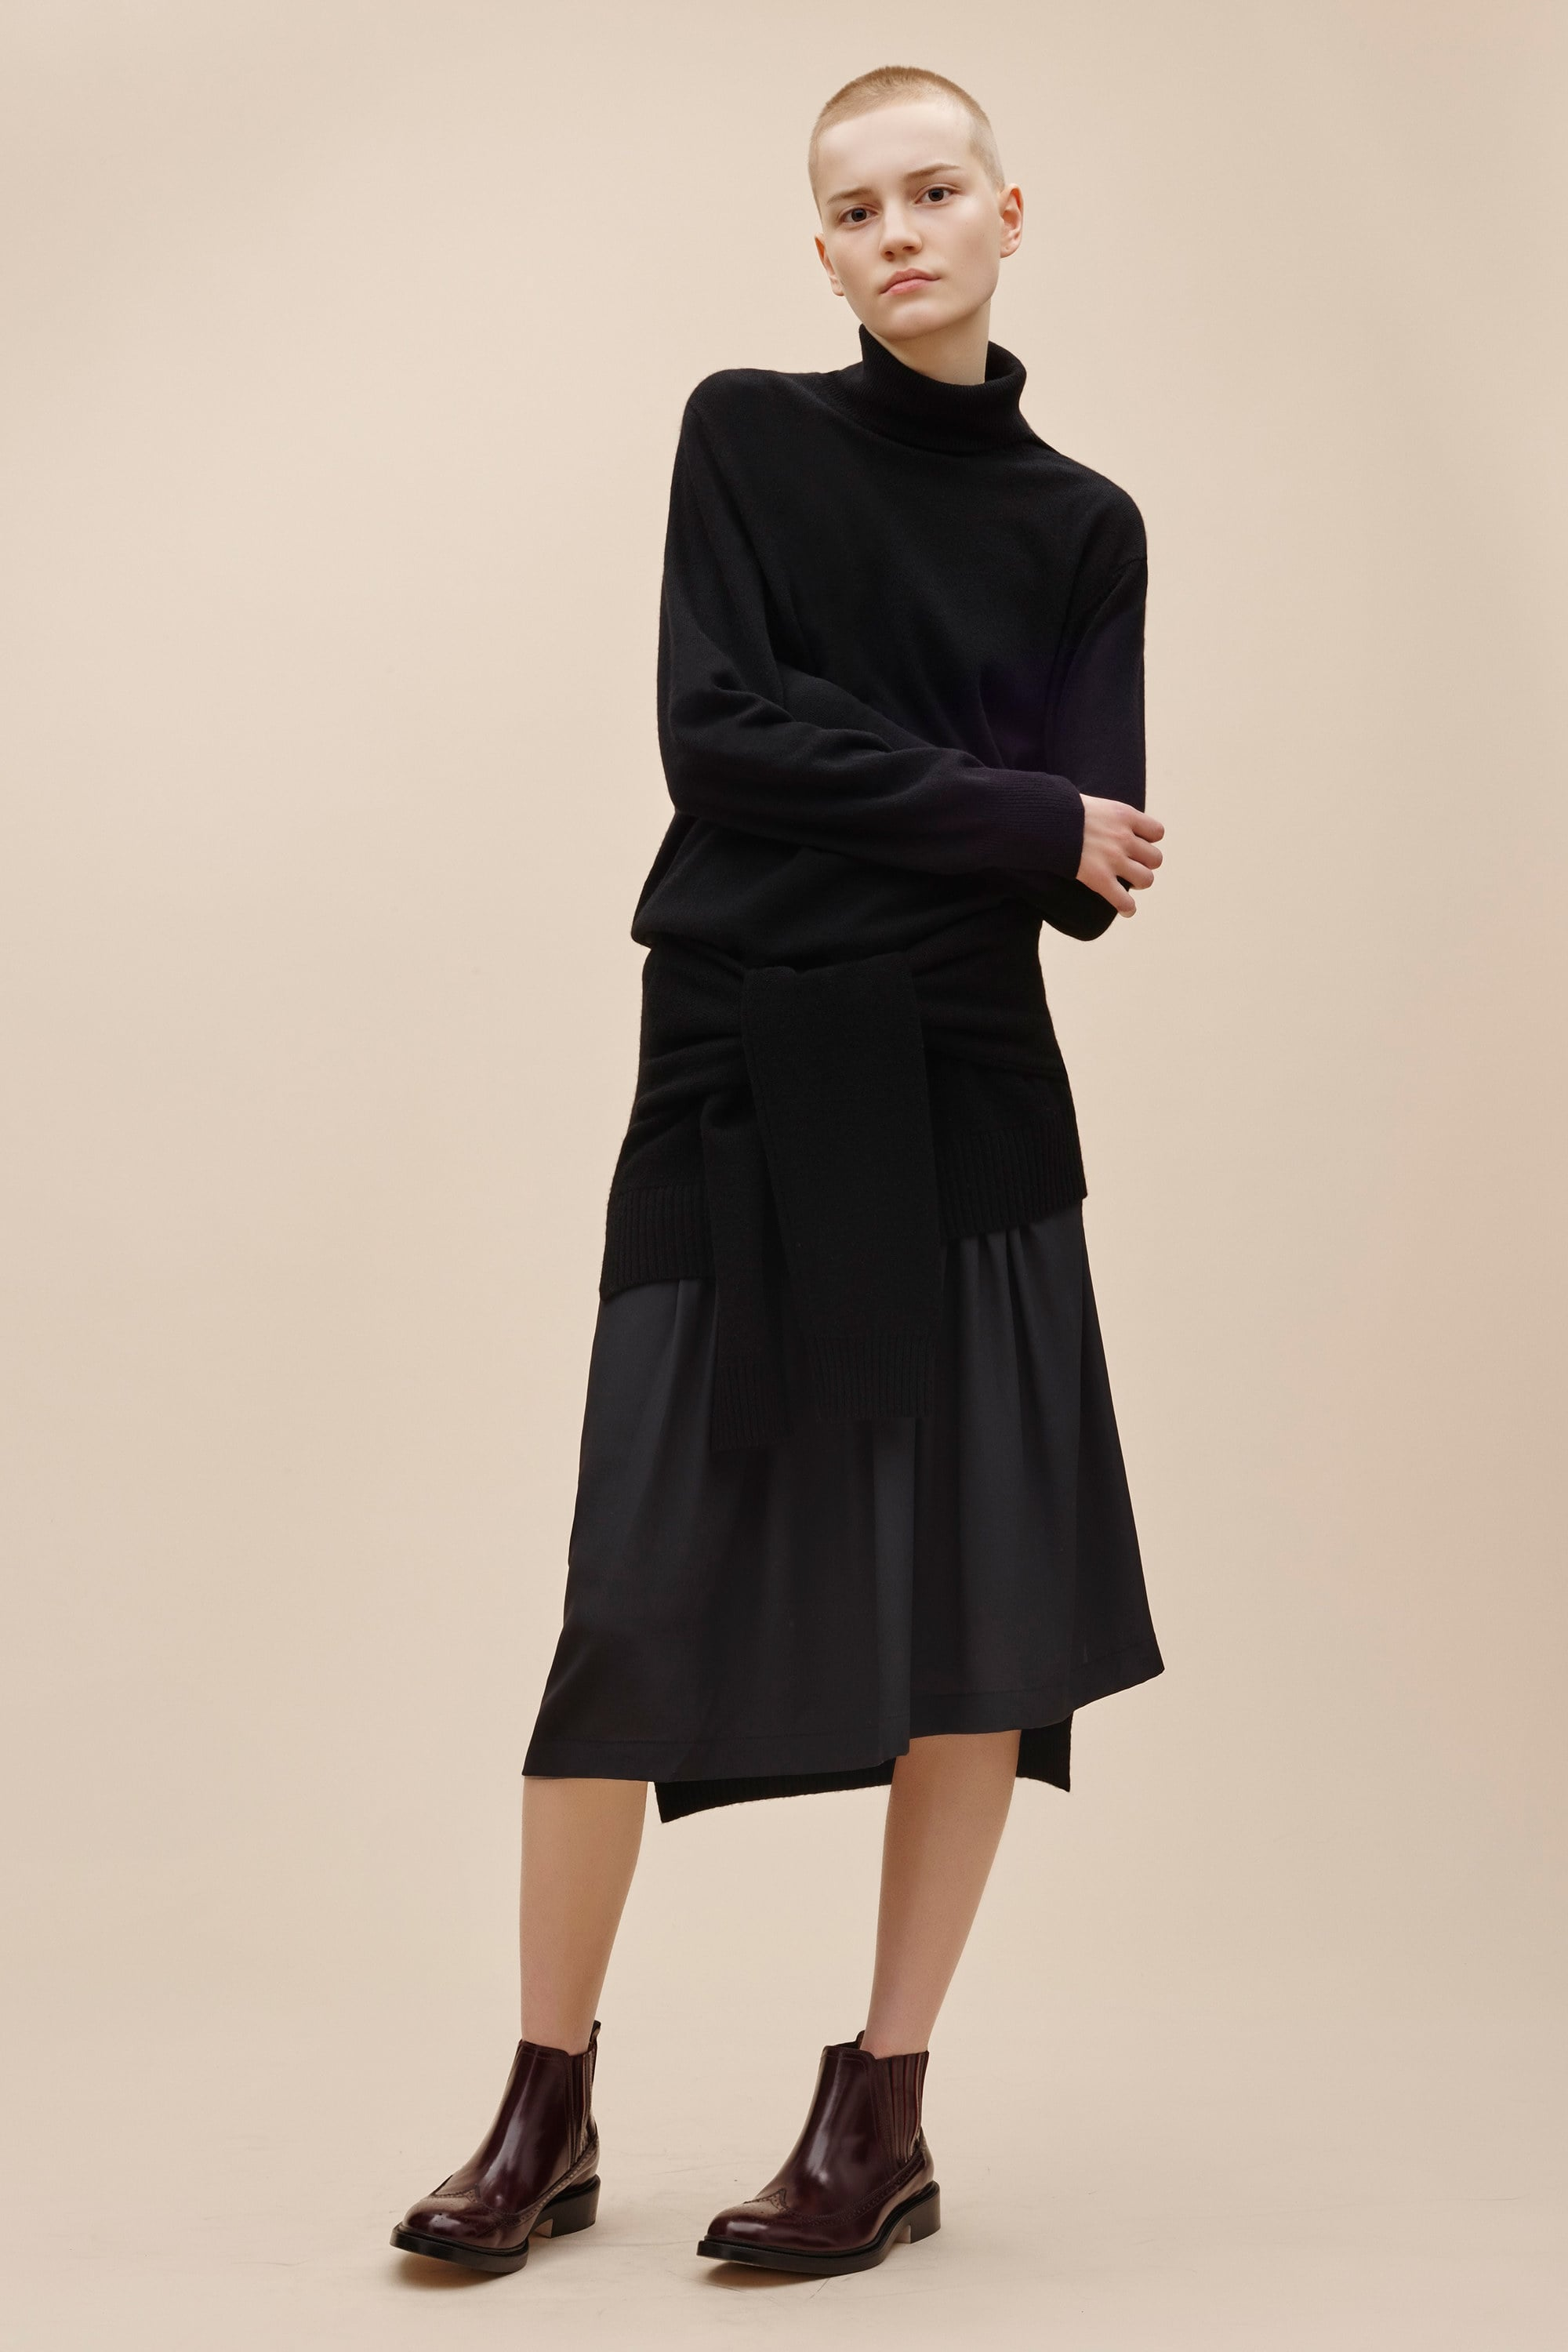 joseph-pre-fall-2016-lookbook-12.jpg